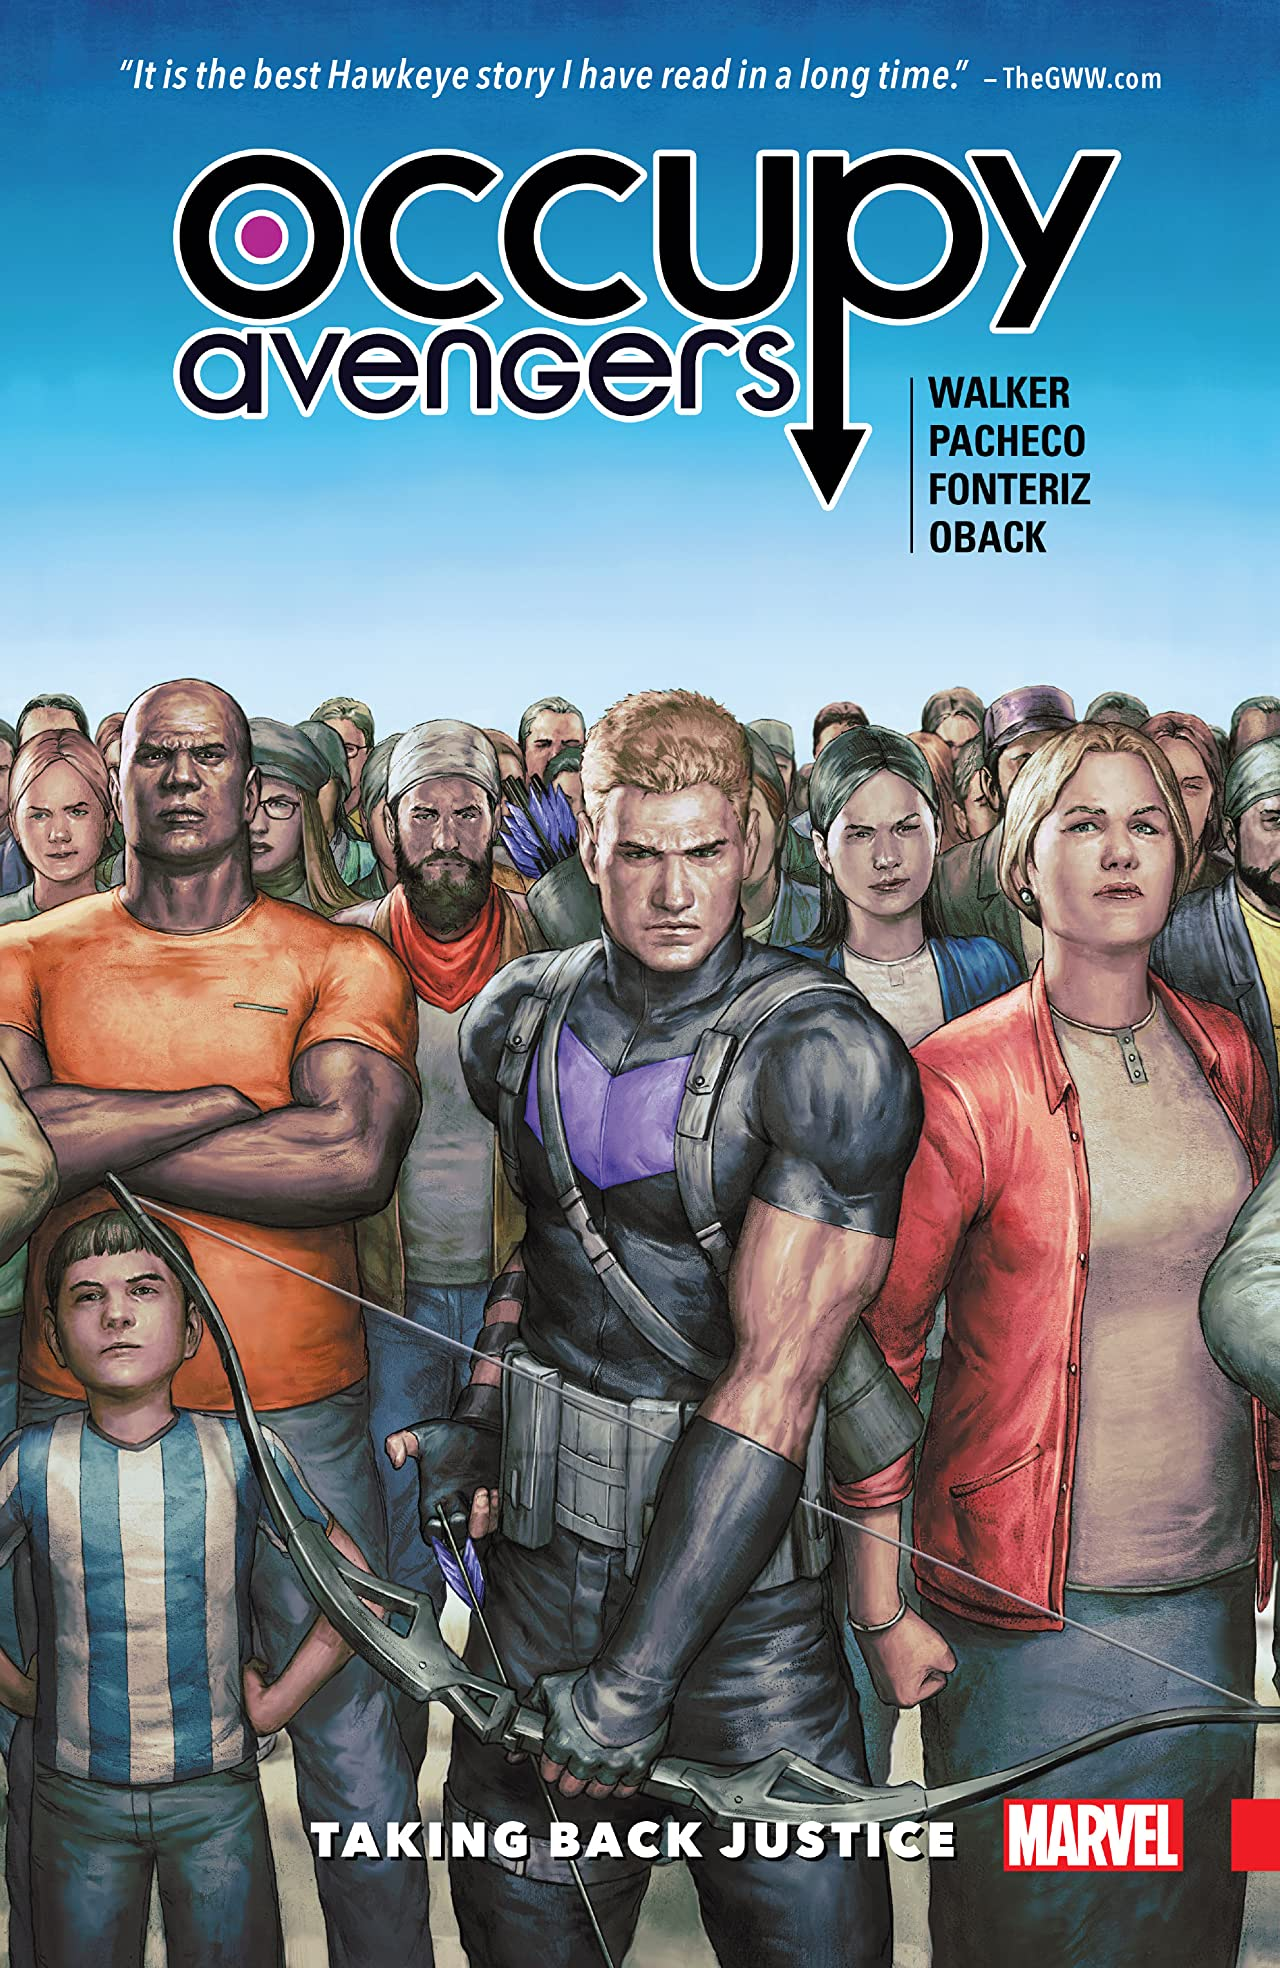 Occupy Avengers Vol. 1: Taking Back Justice